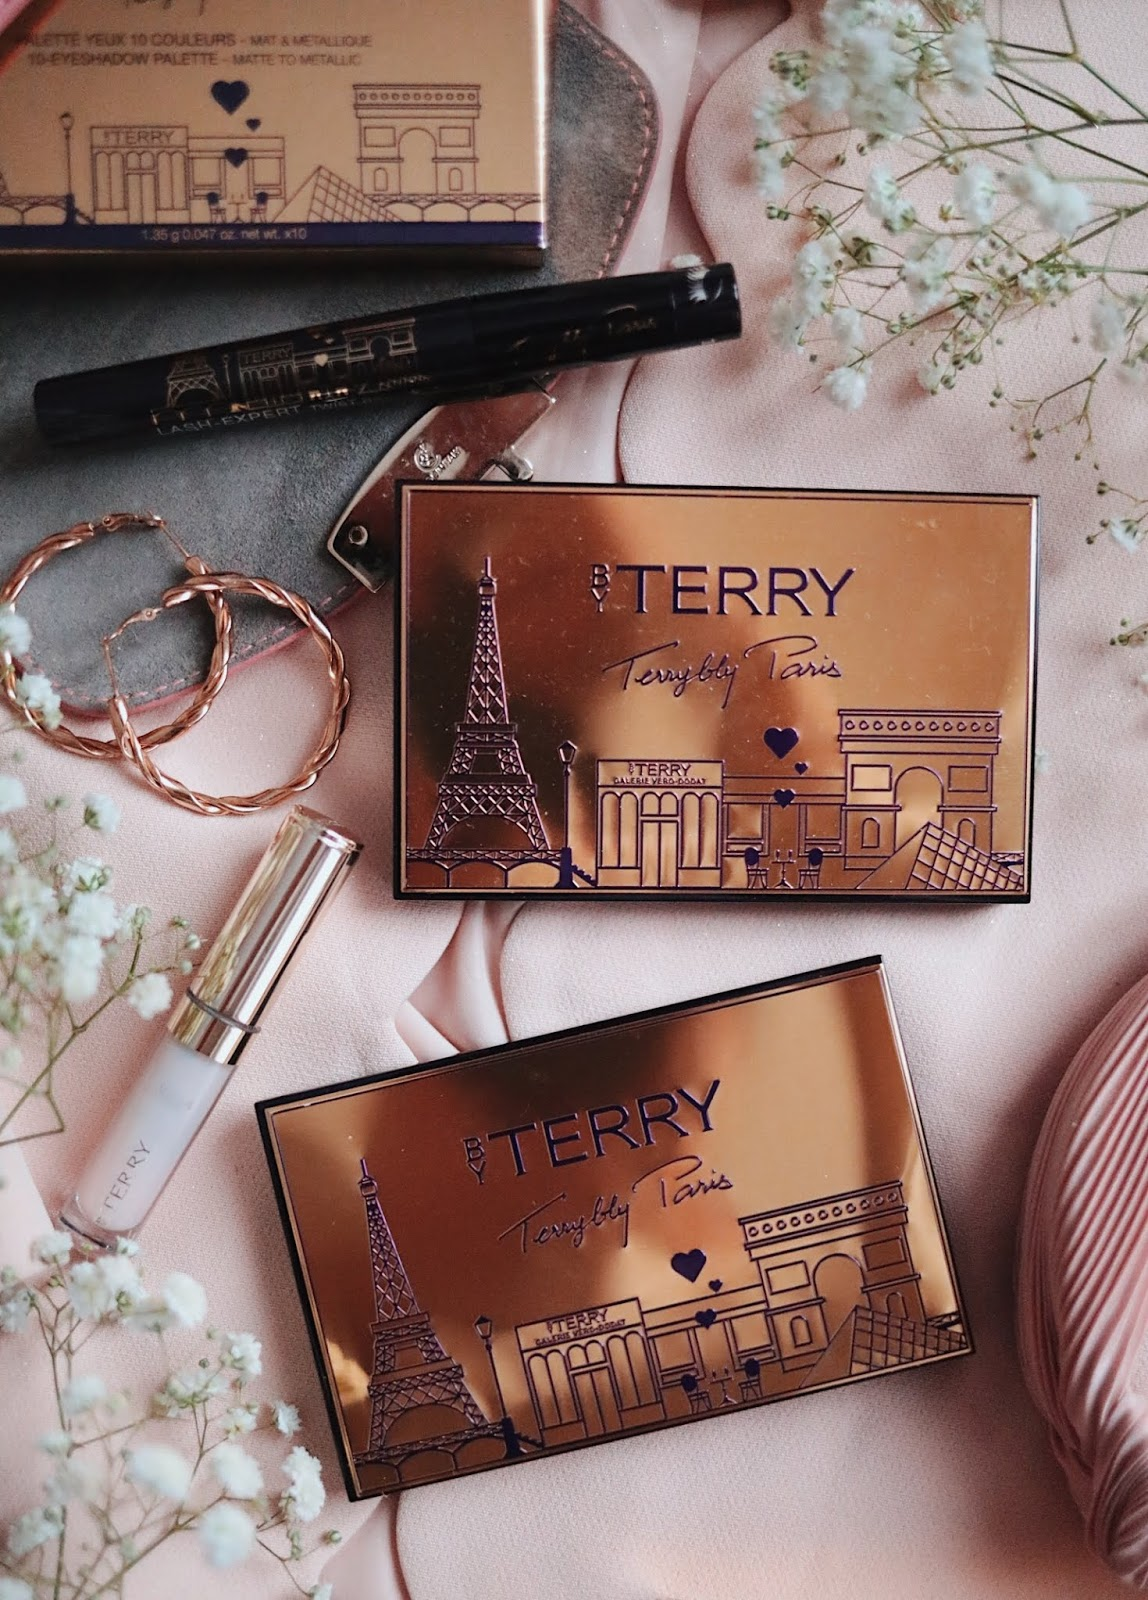 BY TERRY  , TERRYBLY PARIS , V.I.P EXPERT PALETTE  ,V.I.P EXPERT PALETTE LIGHT, V.I.P EXPERT PALETTE NIGHT ,, rosemademoiselle rose mademoiselle ,blog beauté , paris